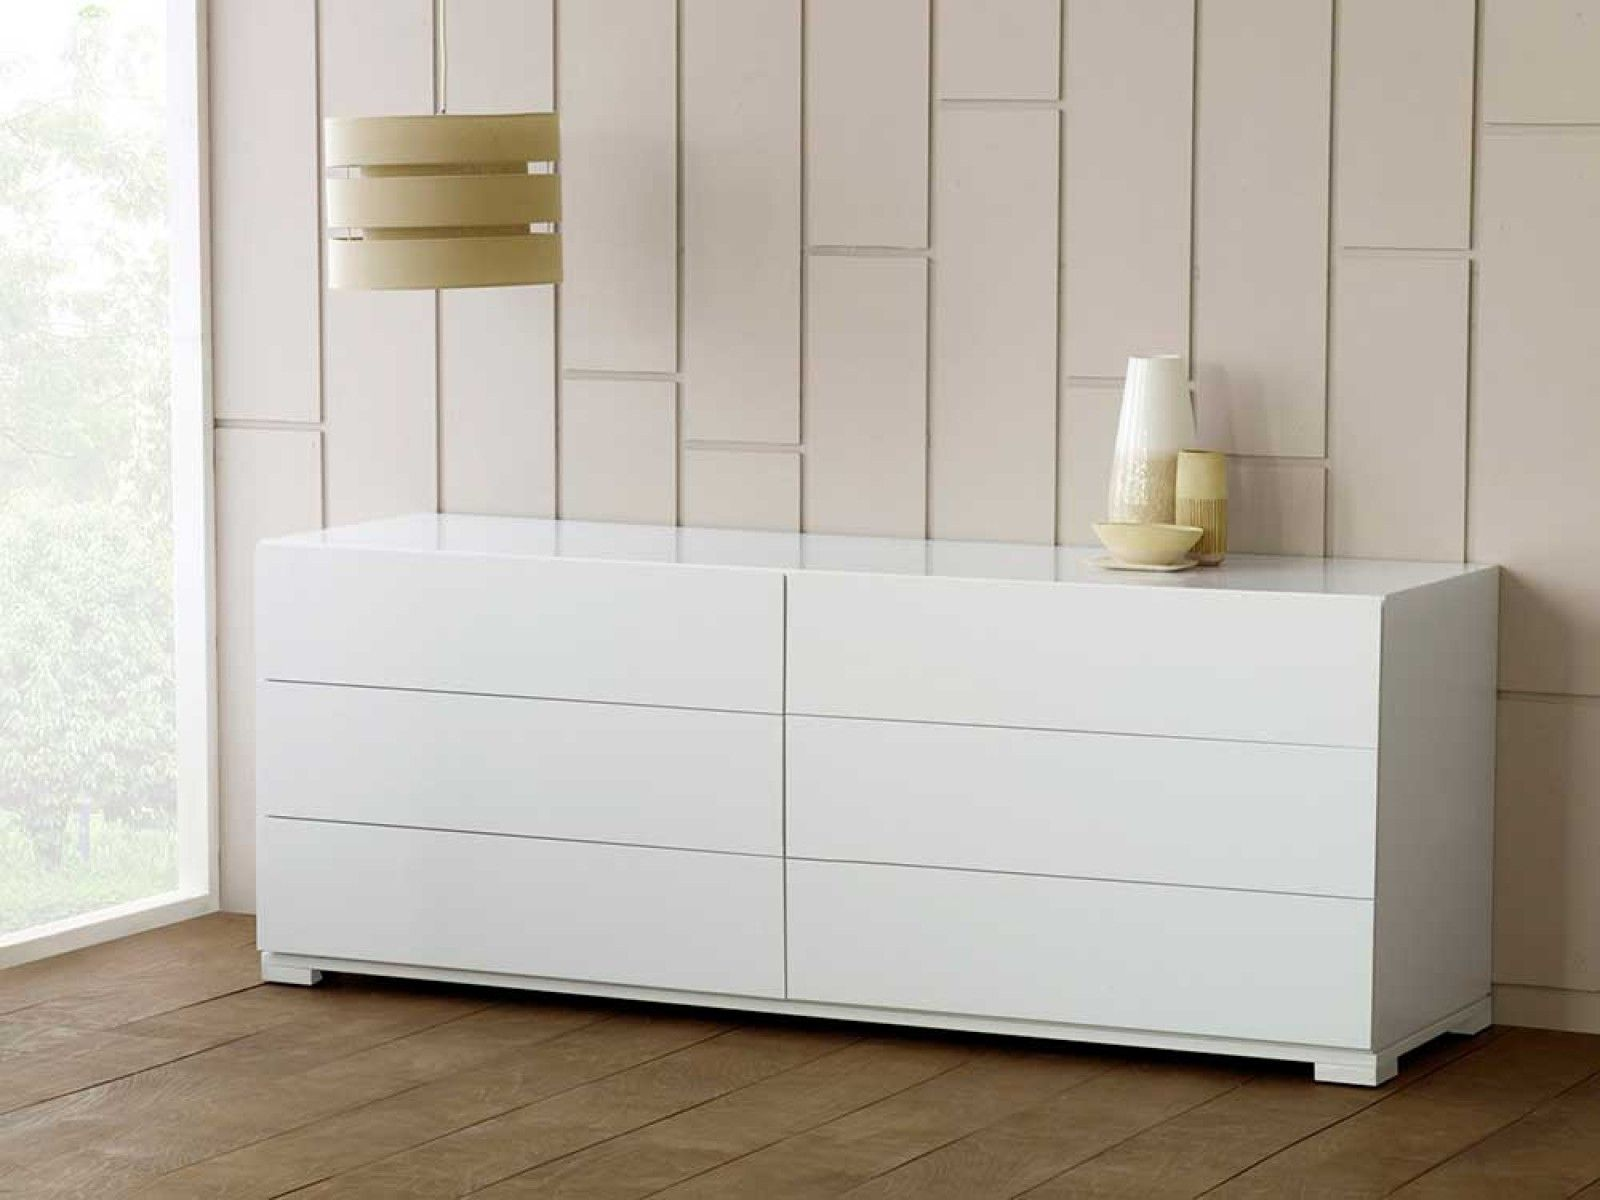 BEDROOM, Bedroom Storage Bench White Wooden Drawers With ...